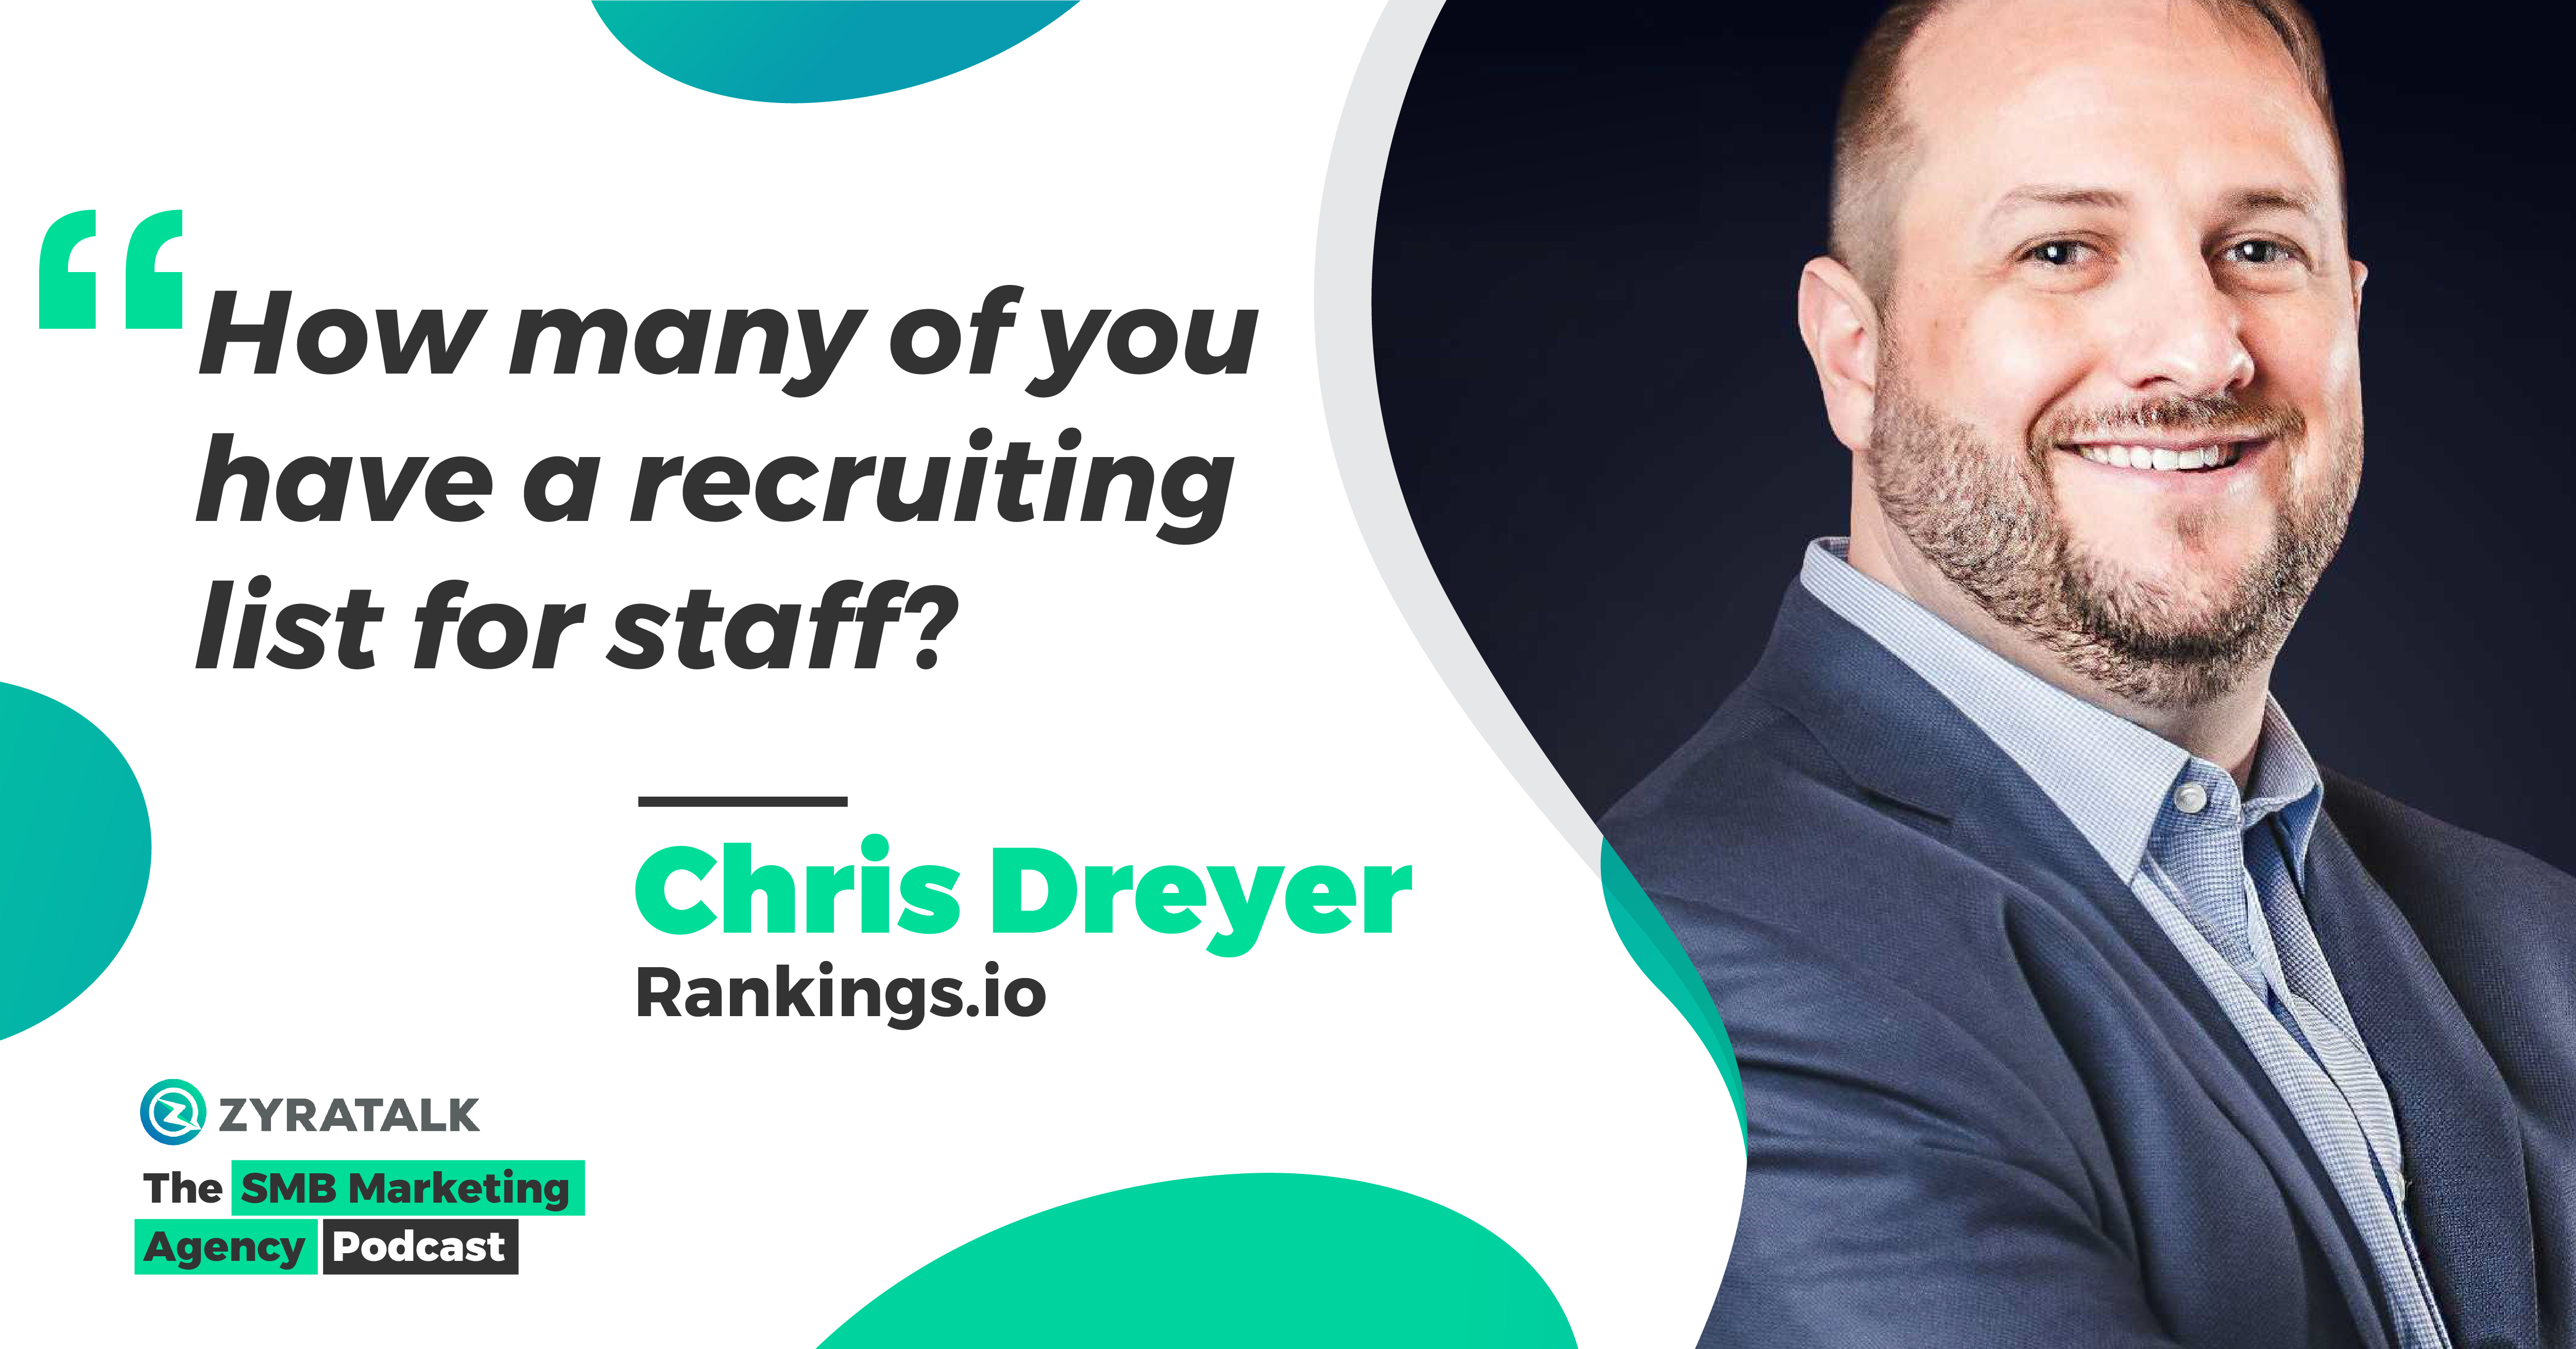 marketing podcast for small business chris dreyer rankings